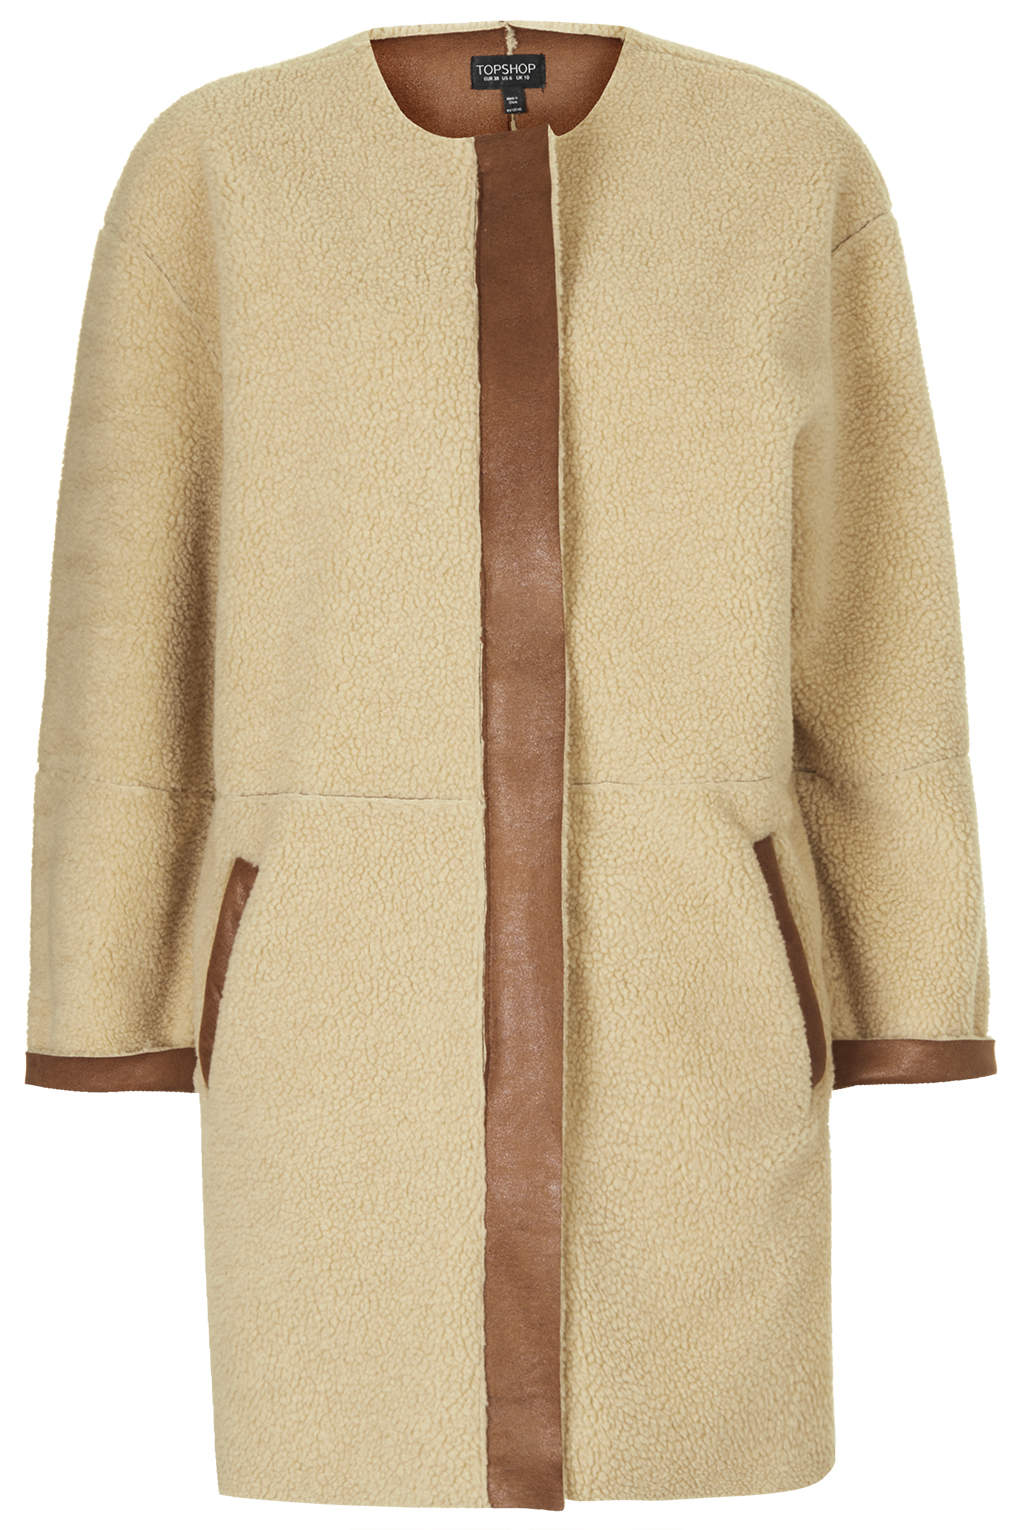 Shearling Ovoid Jacket - Jackets &amp Coats - Clothing